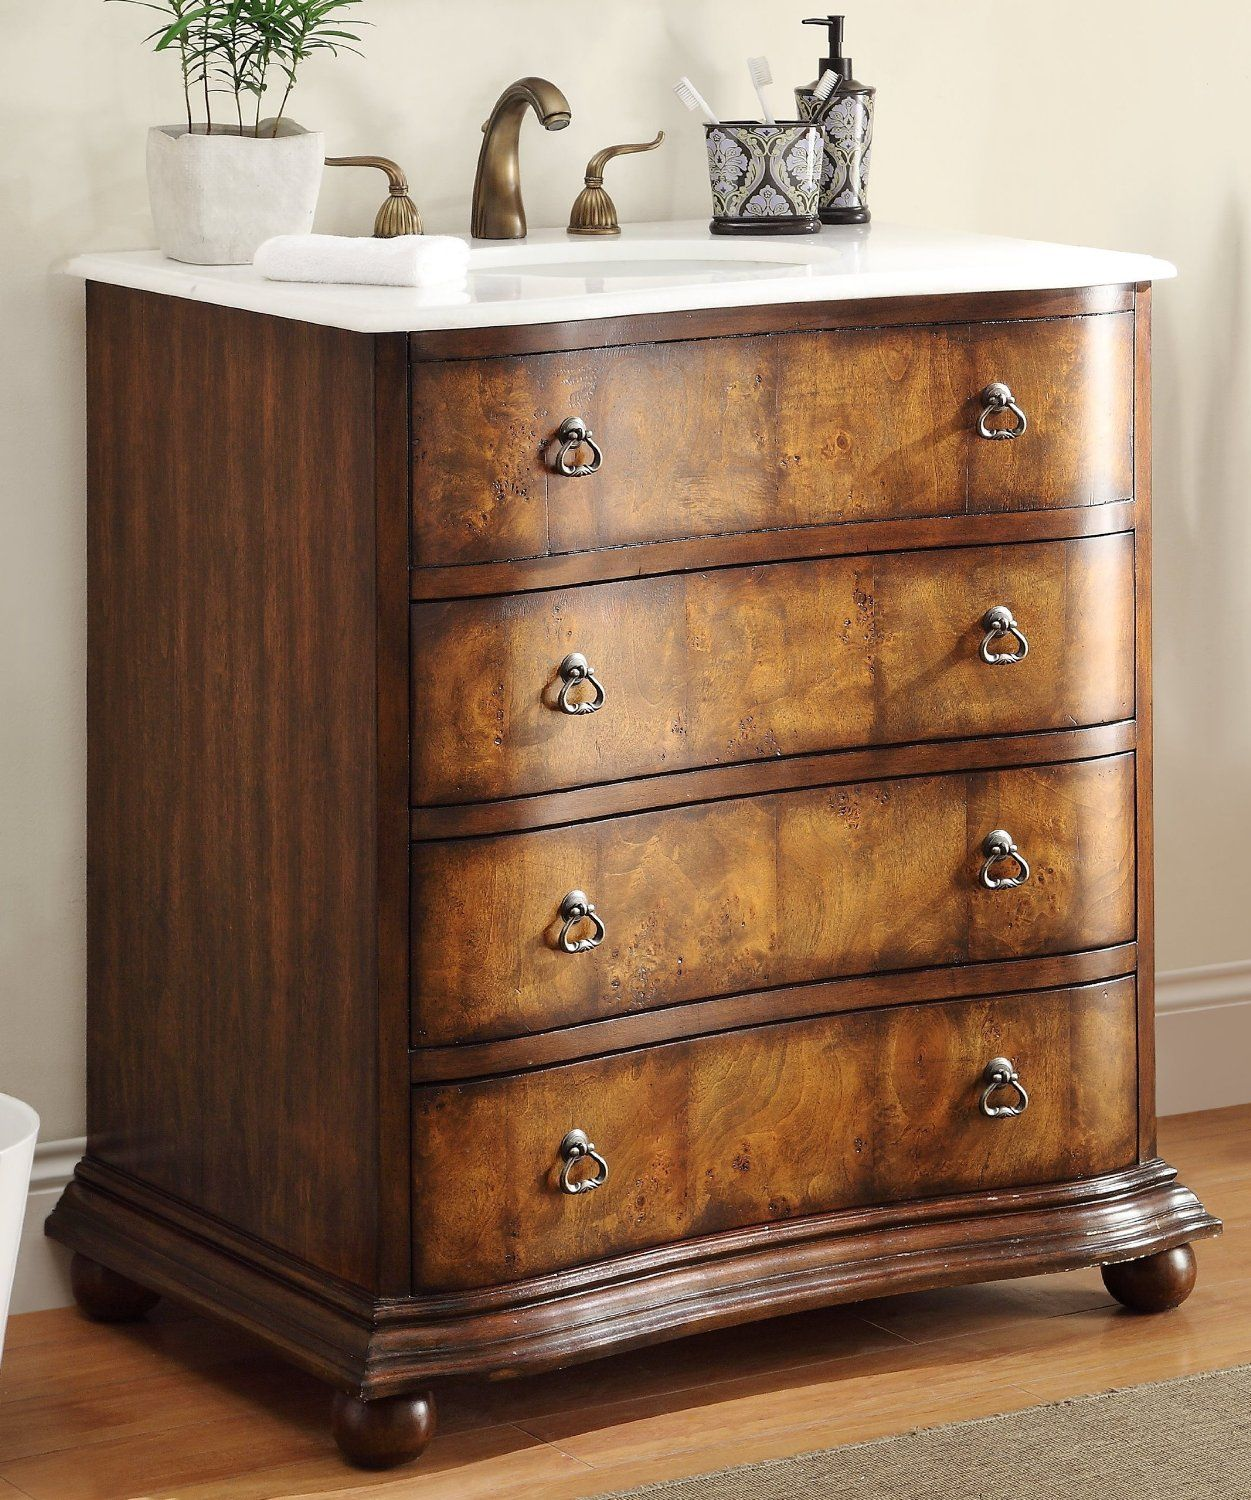 Adelina 34 Inch Antique Single Sink Bathroom Vanity Delicate Sink